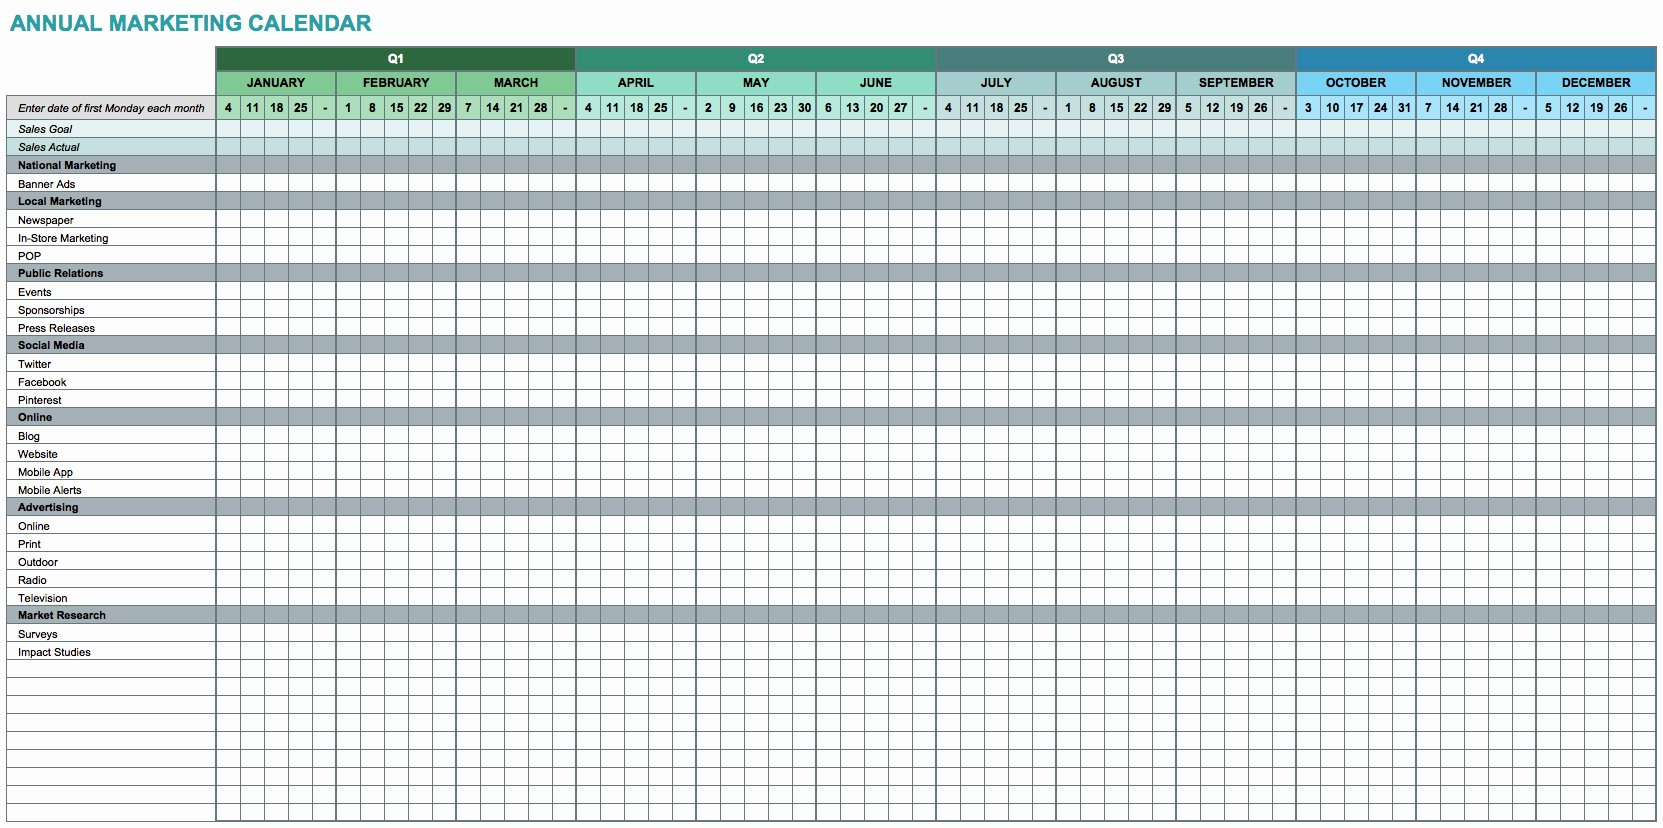 Annual Marketing Plan Template New 9 Free Marketing Calendar Templates for Excel Smartsheet